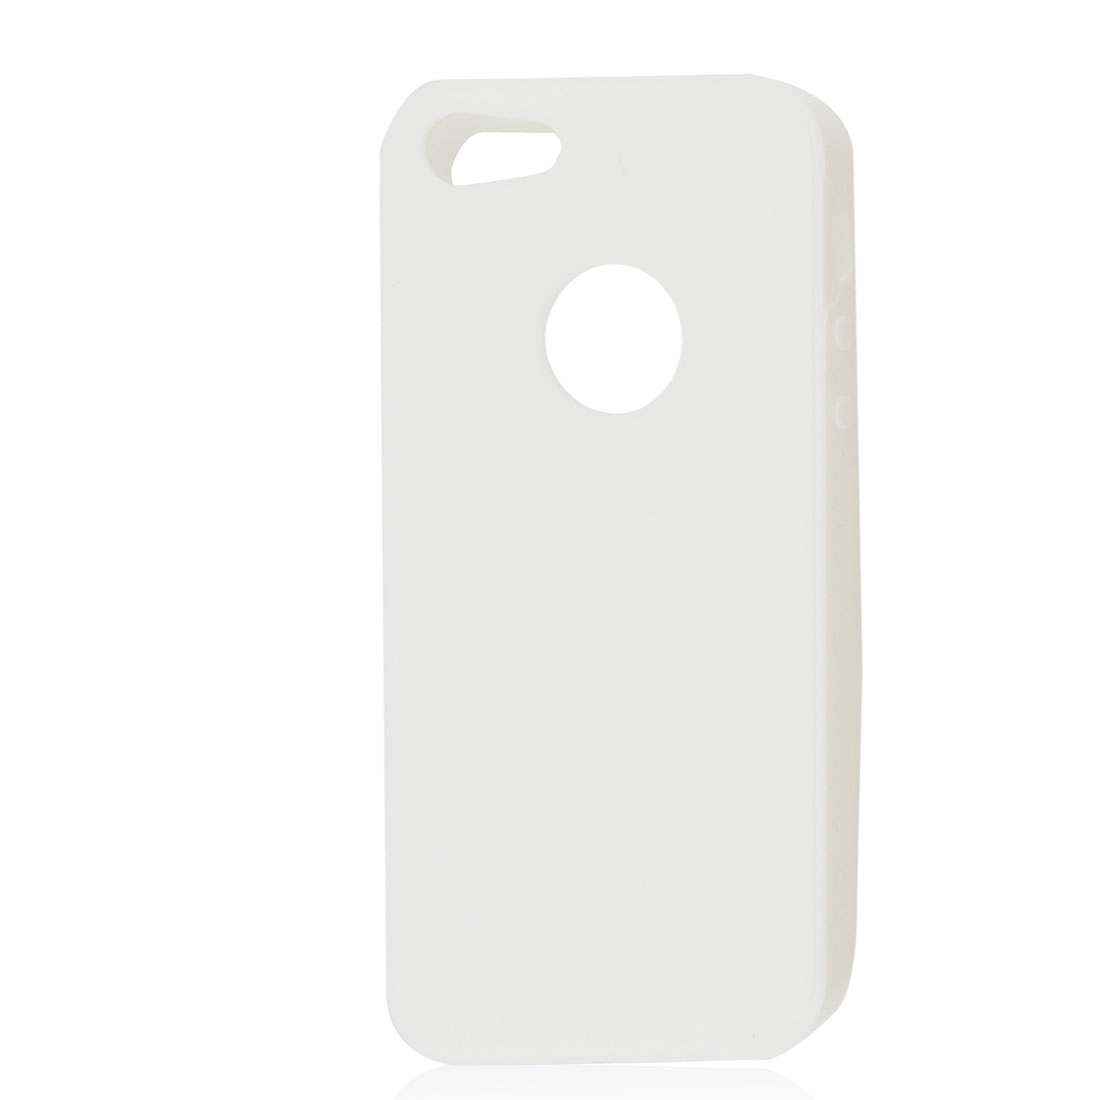 White Silicone Protective Soft Case Skin Cover for Apple iPhone 5 5G